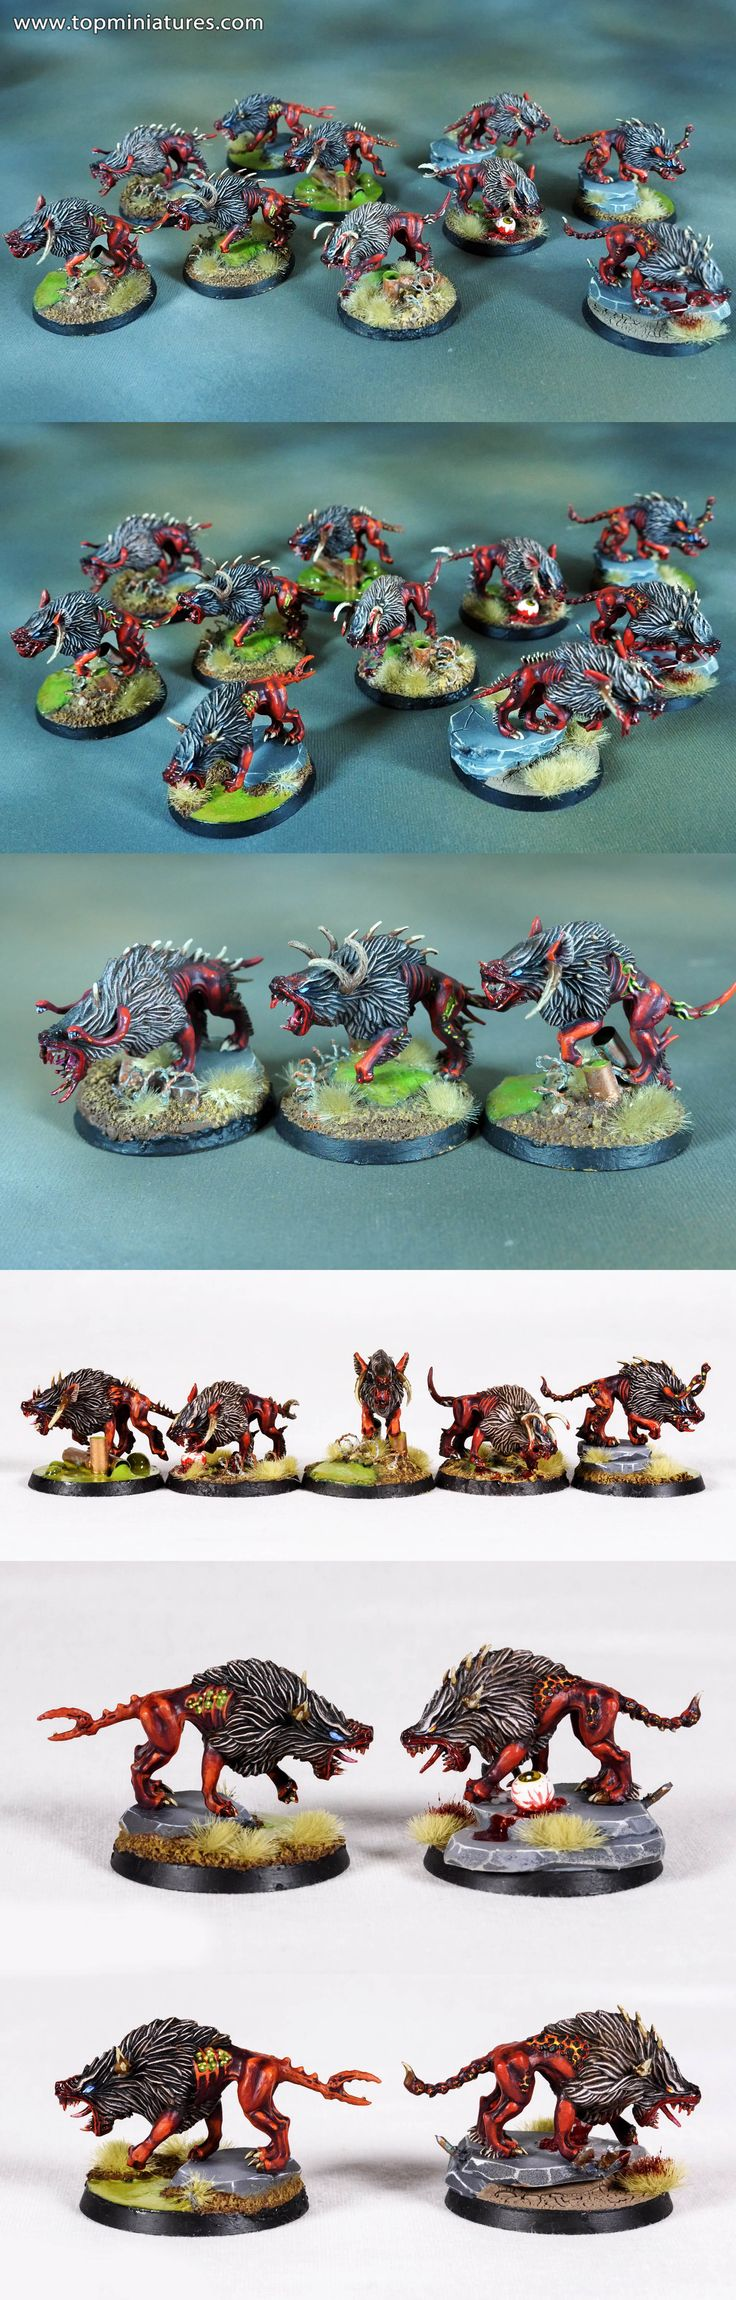 Warhammer fantasy & age of sigmar chaos warhounds / flesh hounds of khorne